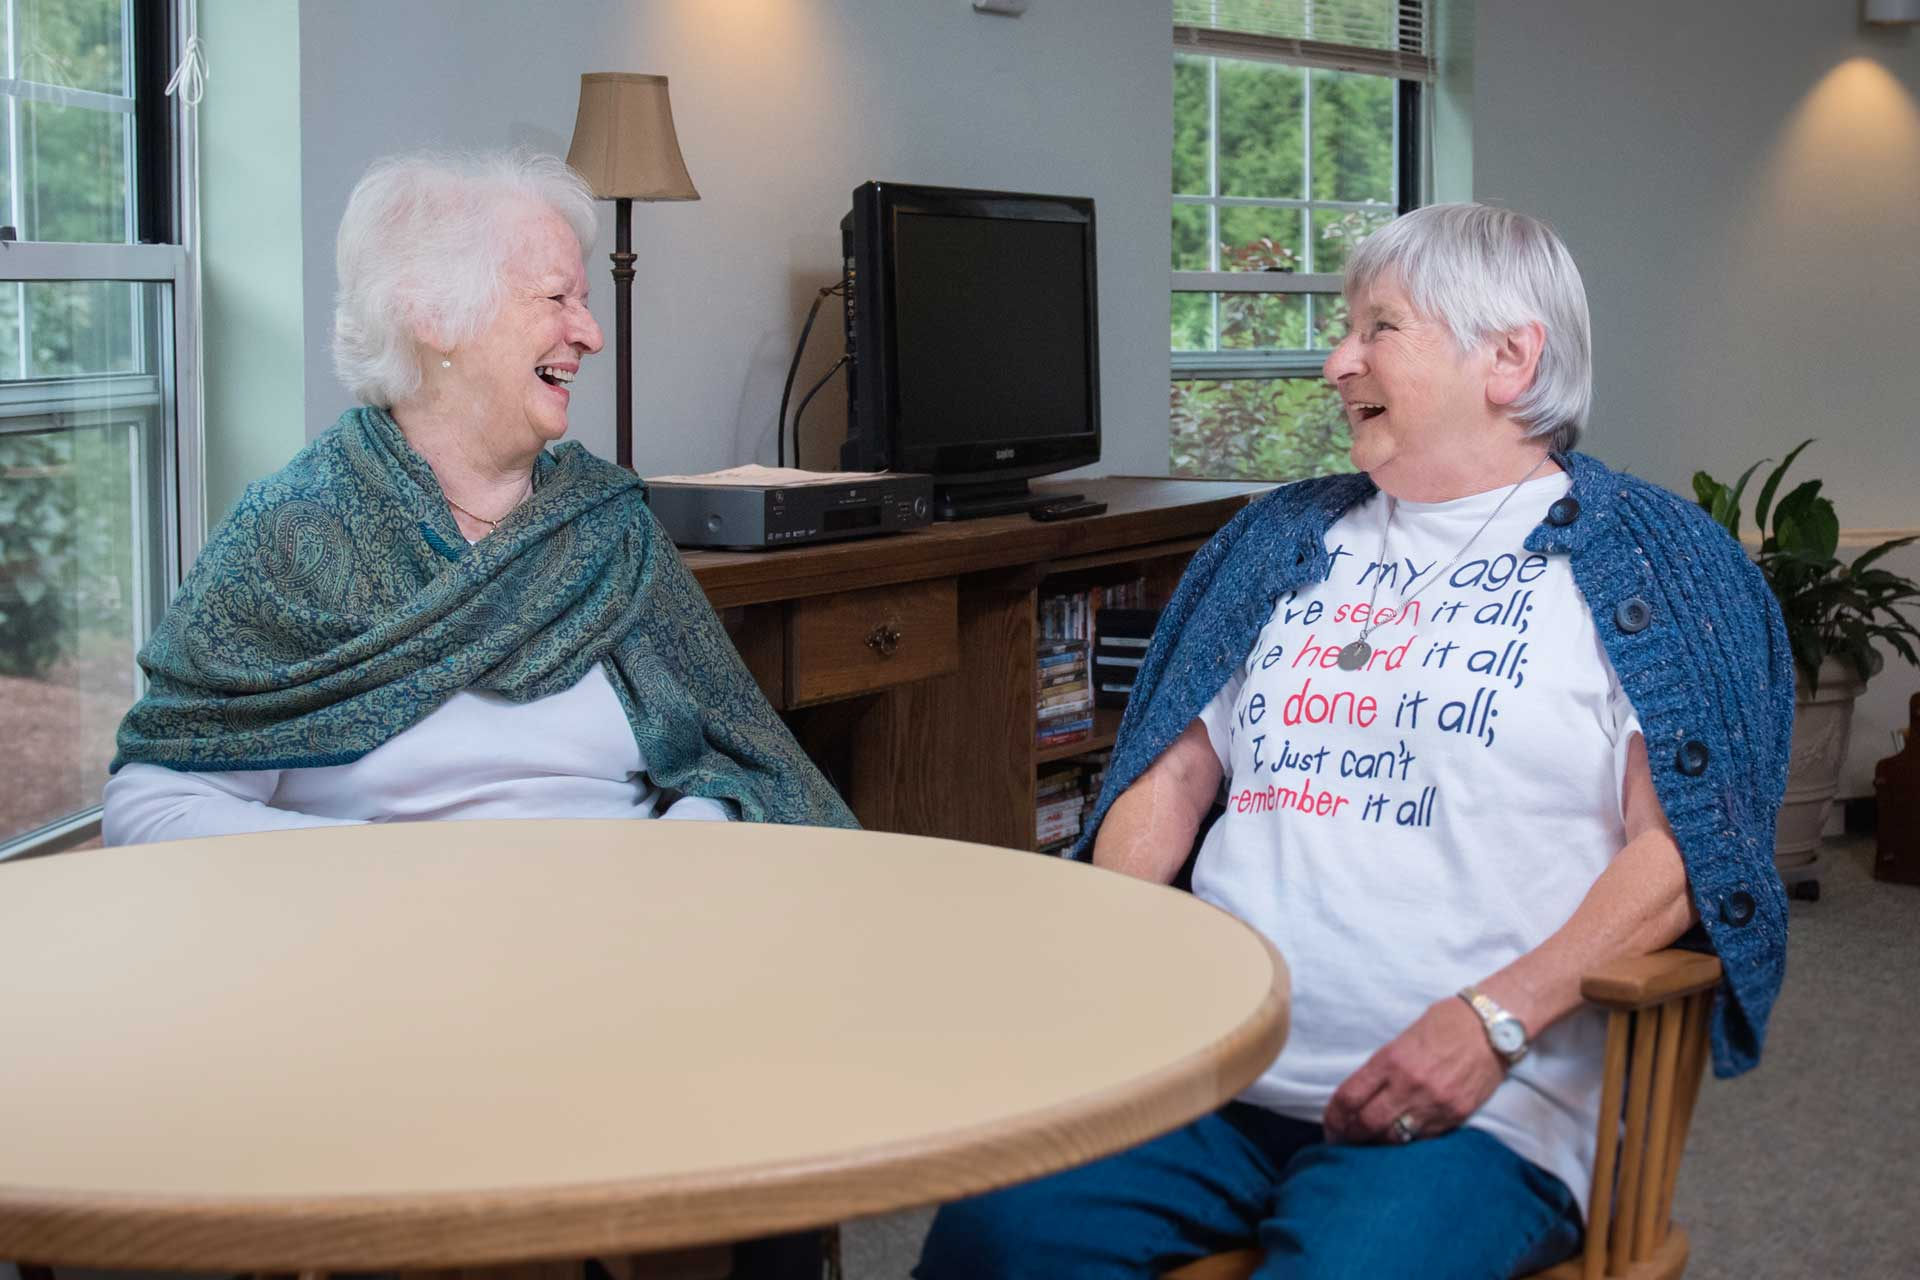 Two woman share a laugh at a table